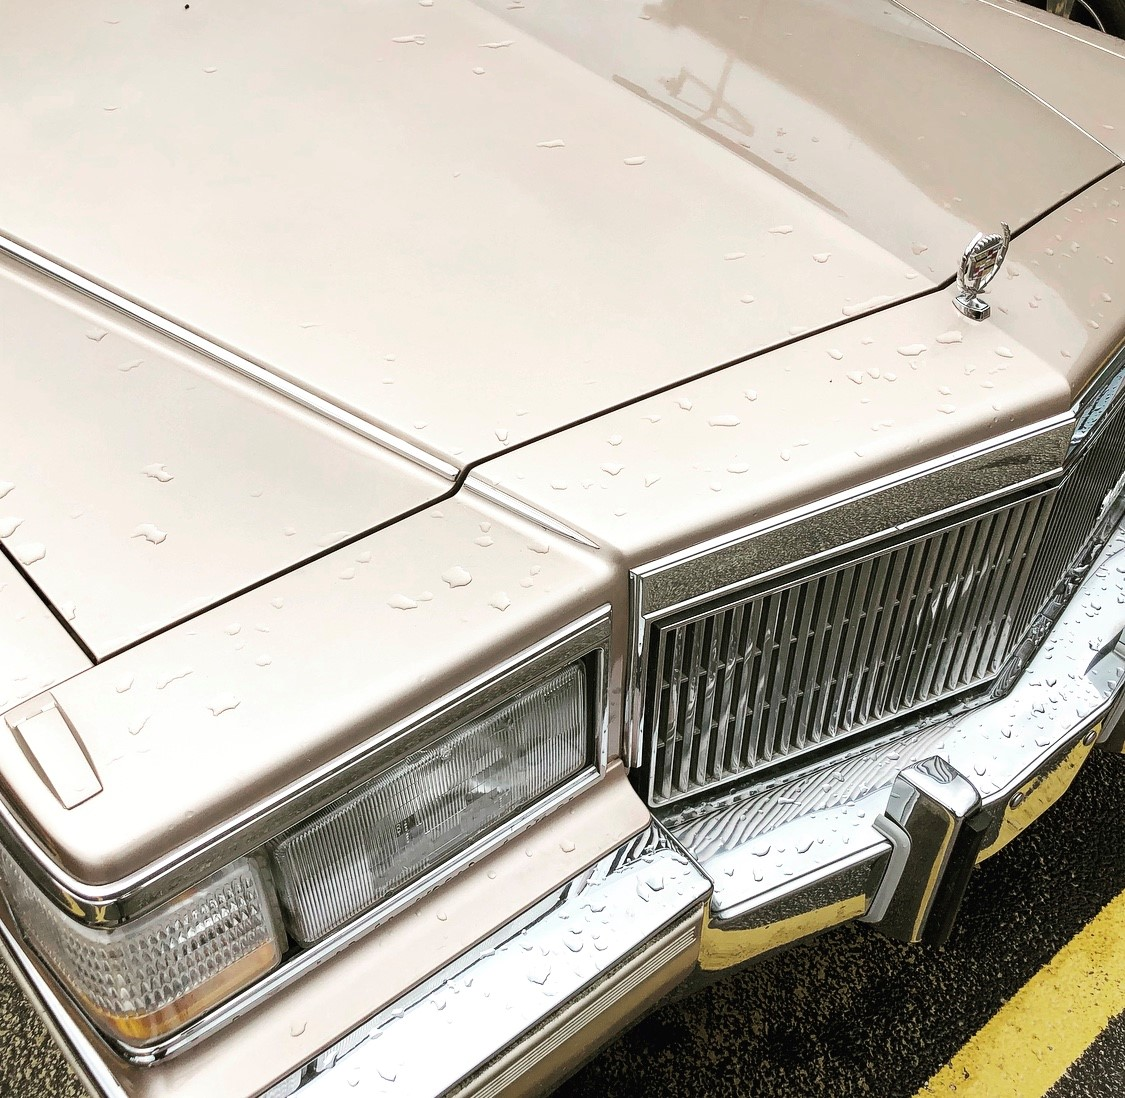 1992 Cadillac Brougham headlight and grille